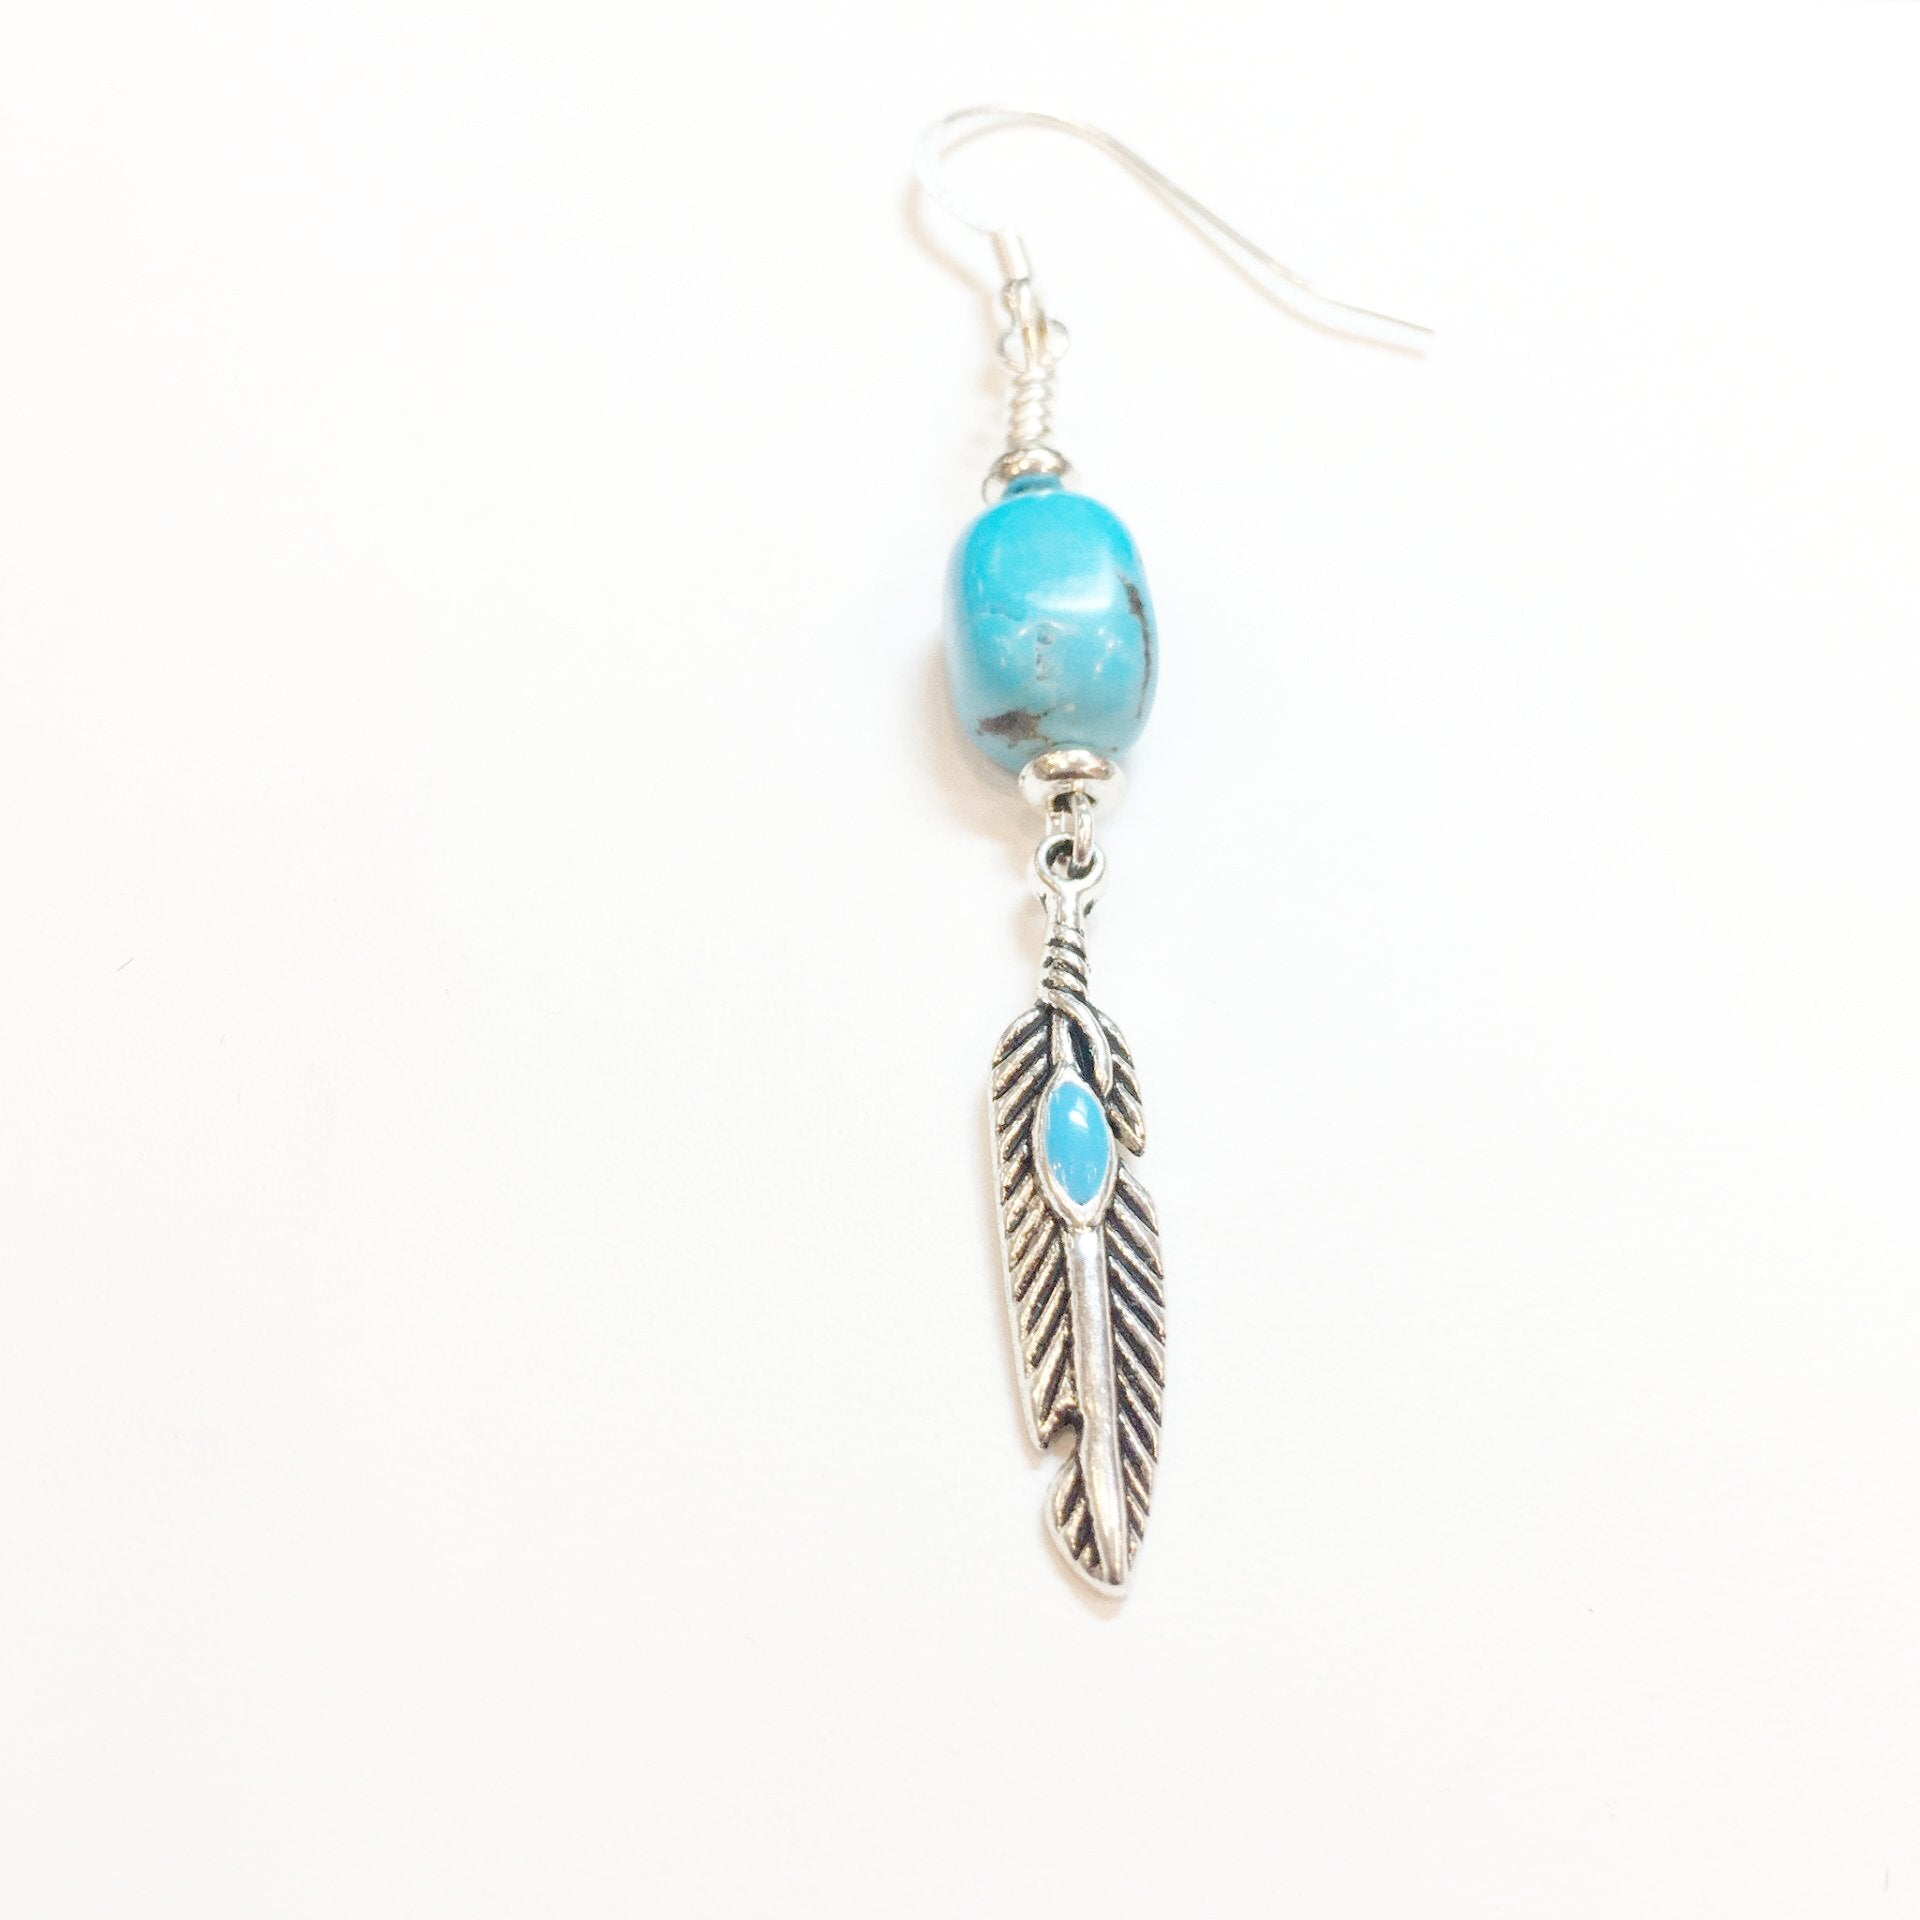 Turquoise and Silver Drop Earring - Real Chic Boutique  - 1